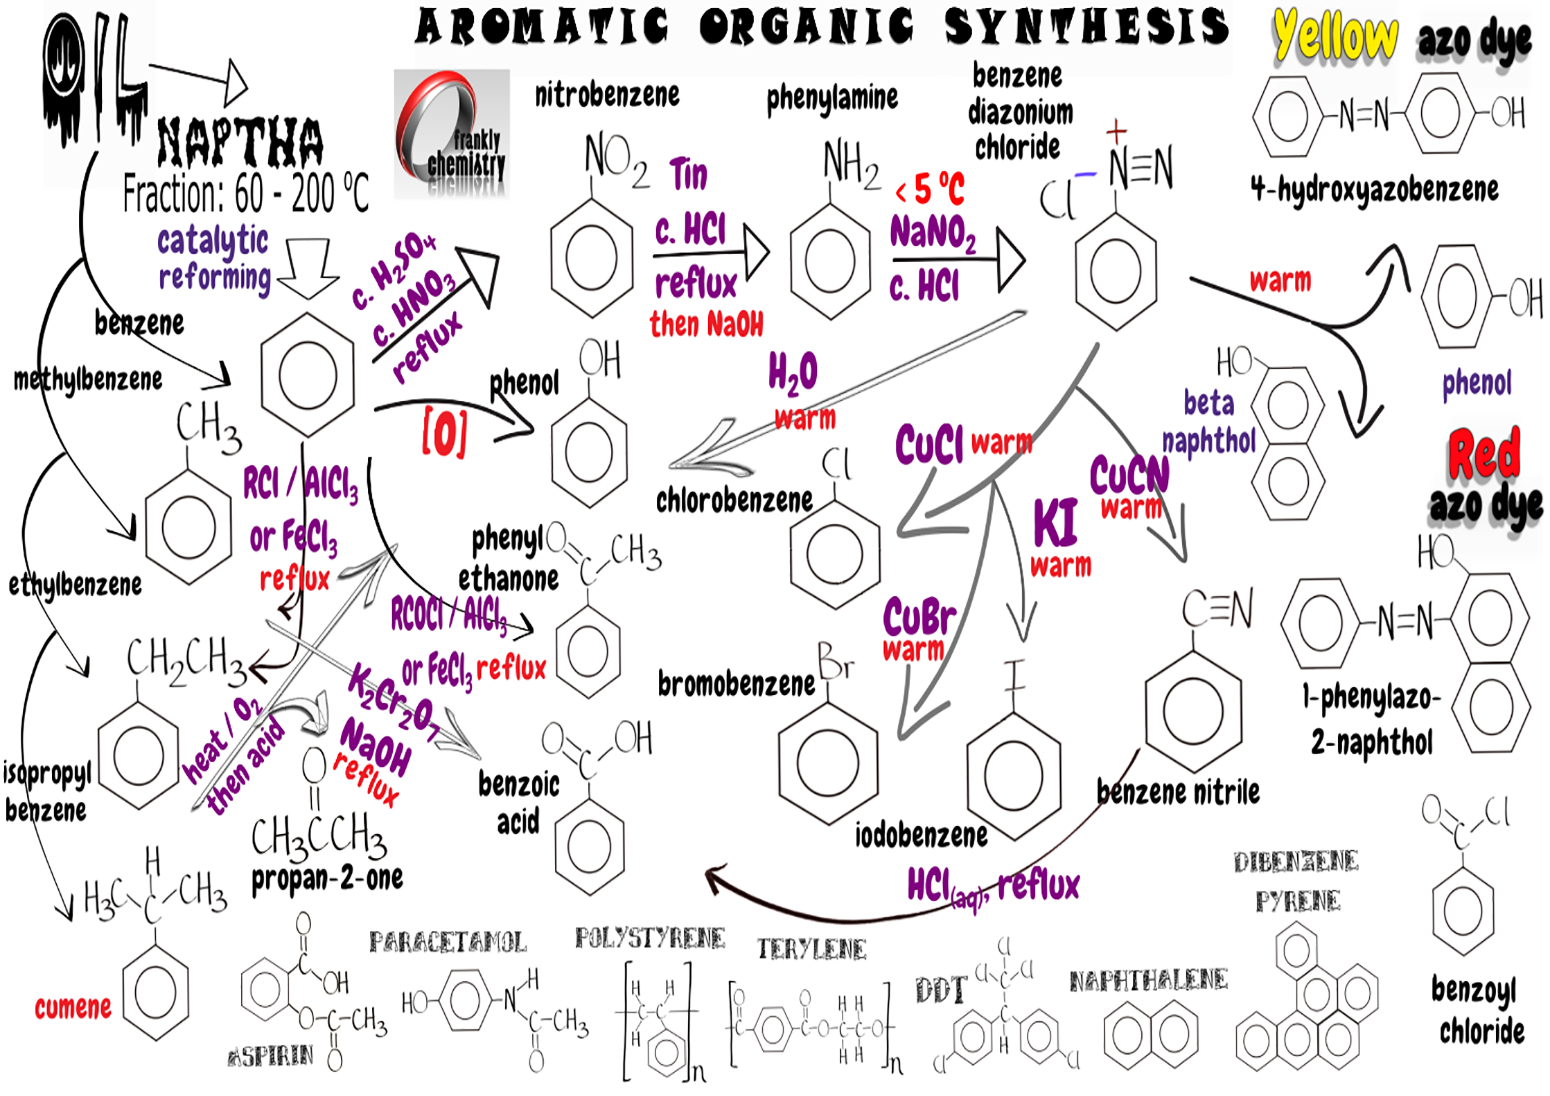 organic sysnthesis 399 organic synthesis jobs available on indeedcom senior scientist, senior associate scientist, r&d engineer and more.